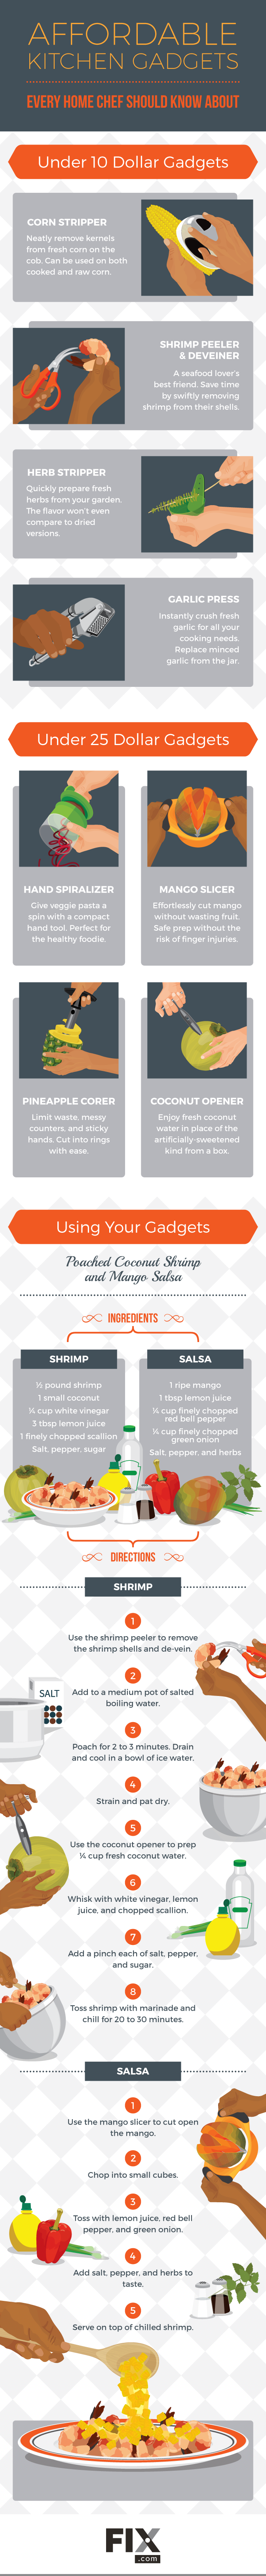 Every Home Chef's Savior: Must-Have Super-Affordable Kitchen Gadgets - Infographic